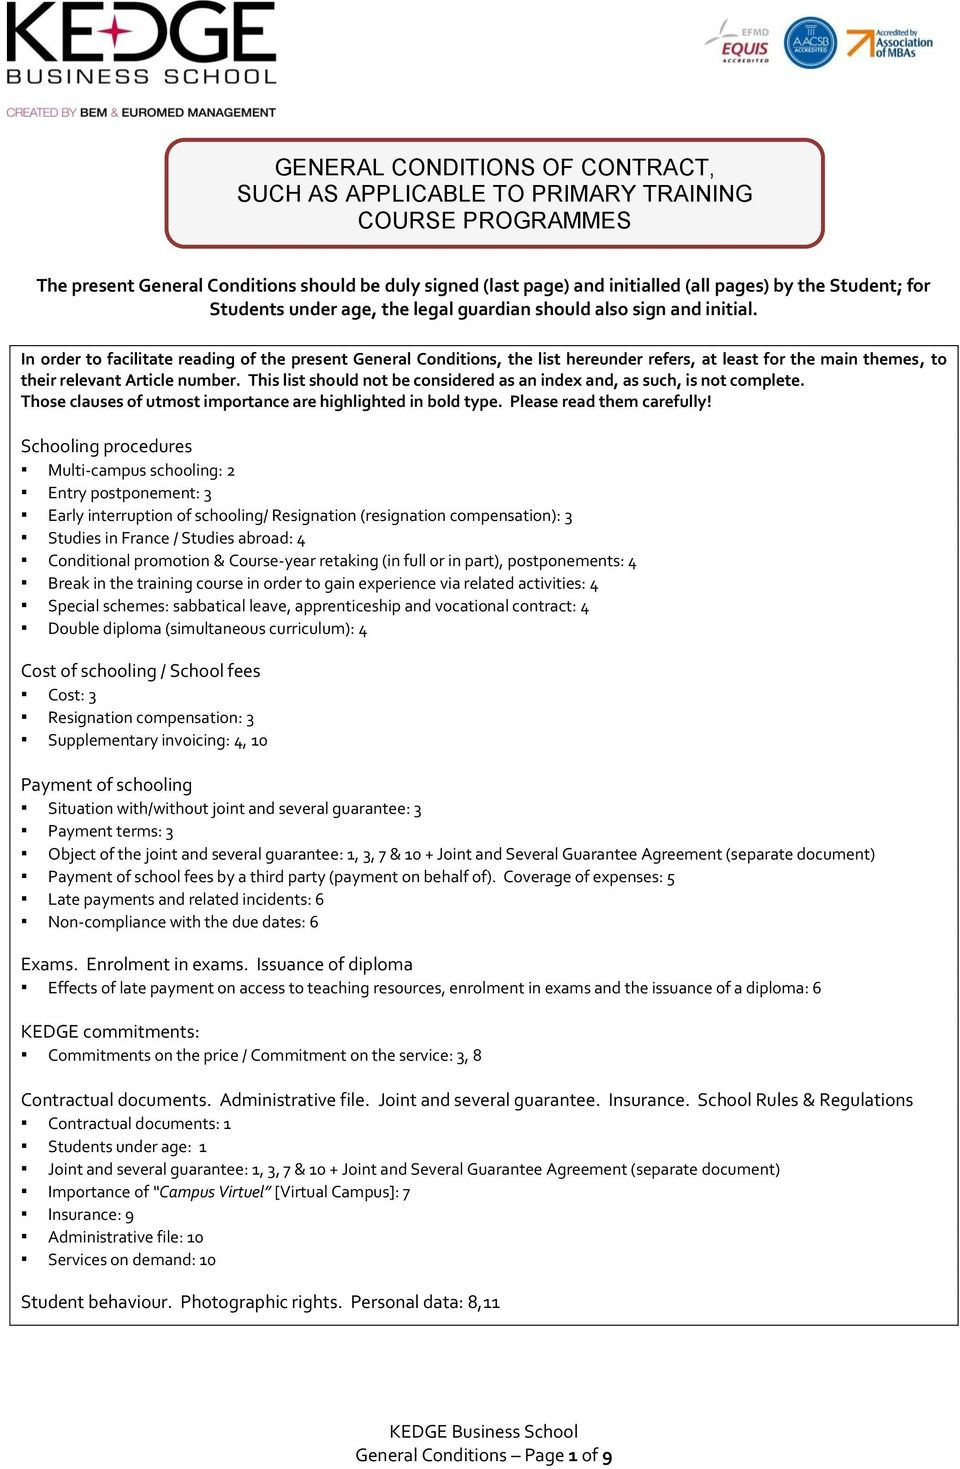 General Conditions Of Contract Such As Applicable To